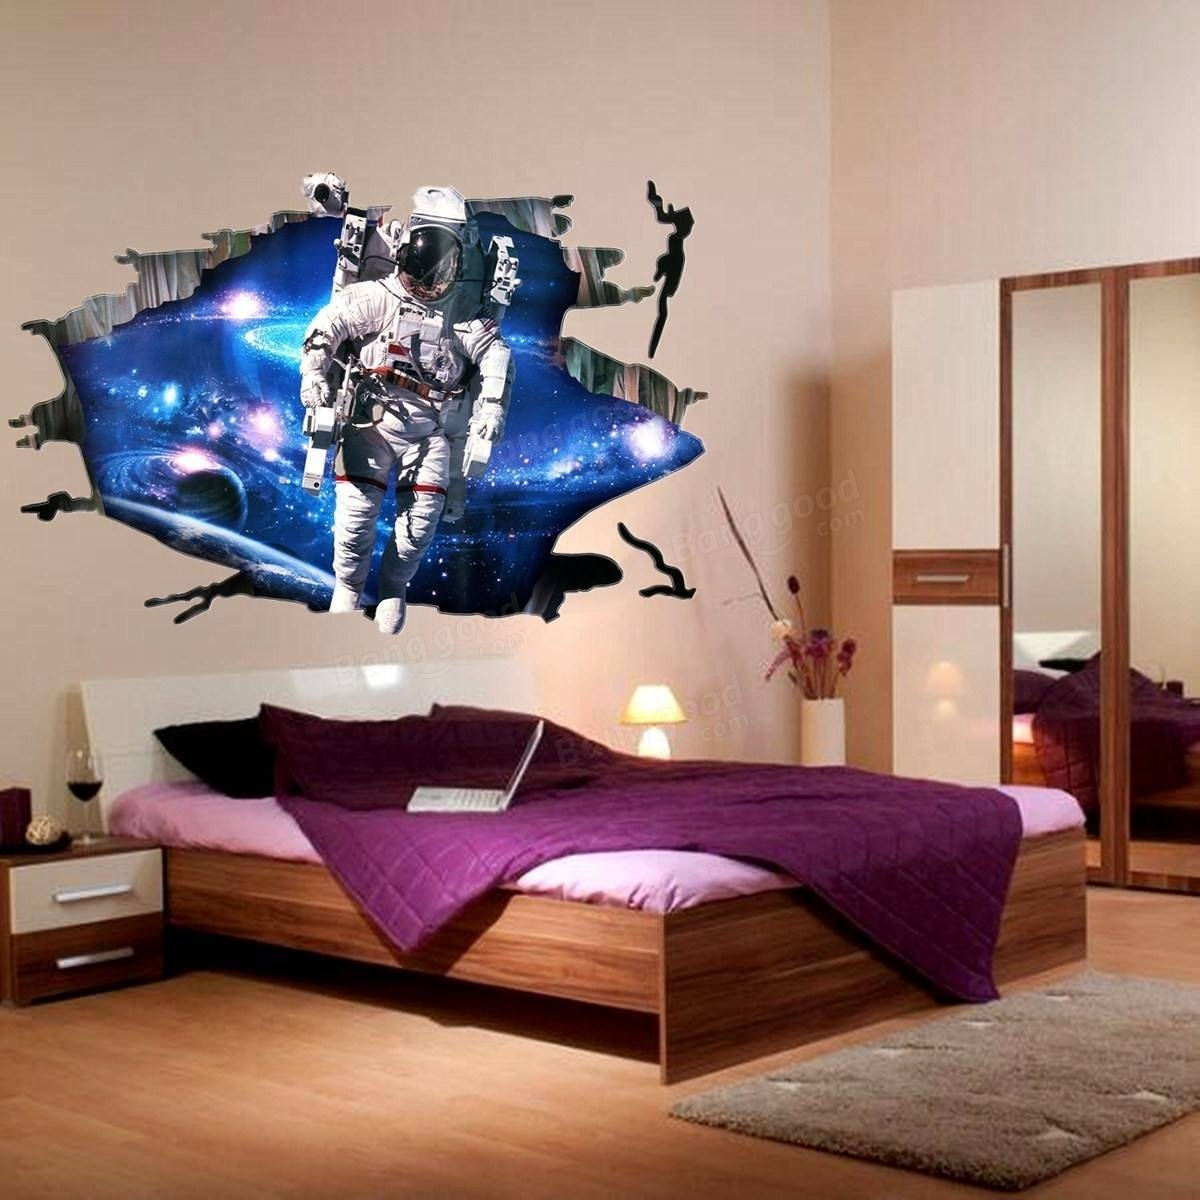 3D Wall Stickers Wallpaper Space Astronauts Decor Kids Room Decal Inside Best And Newest Astronaut 3D Wall Art (Gallery 19 of 20)